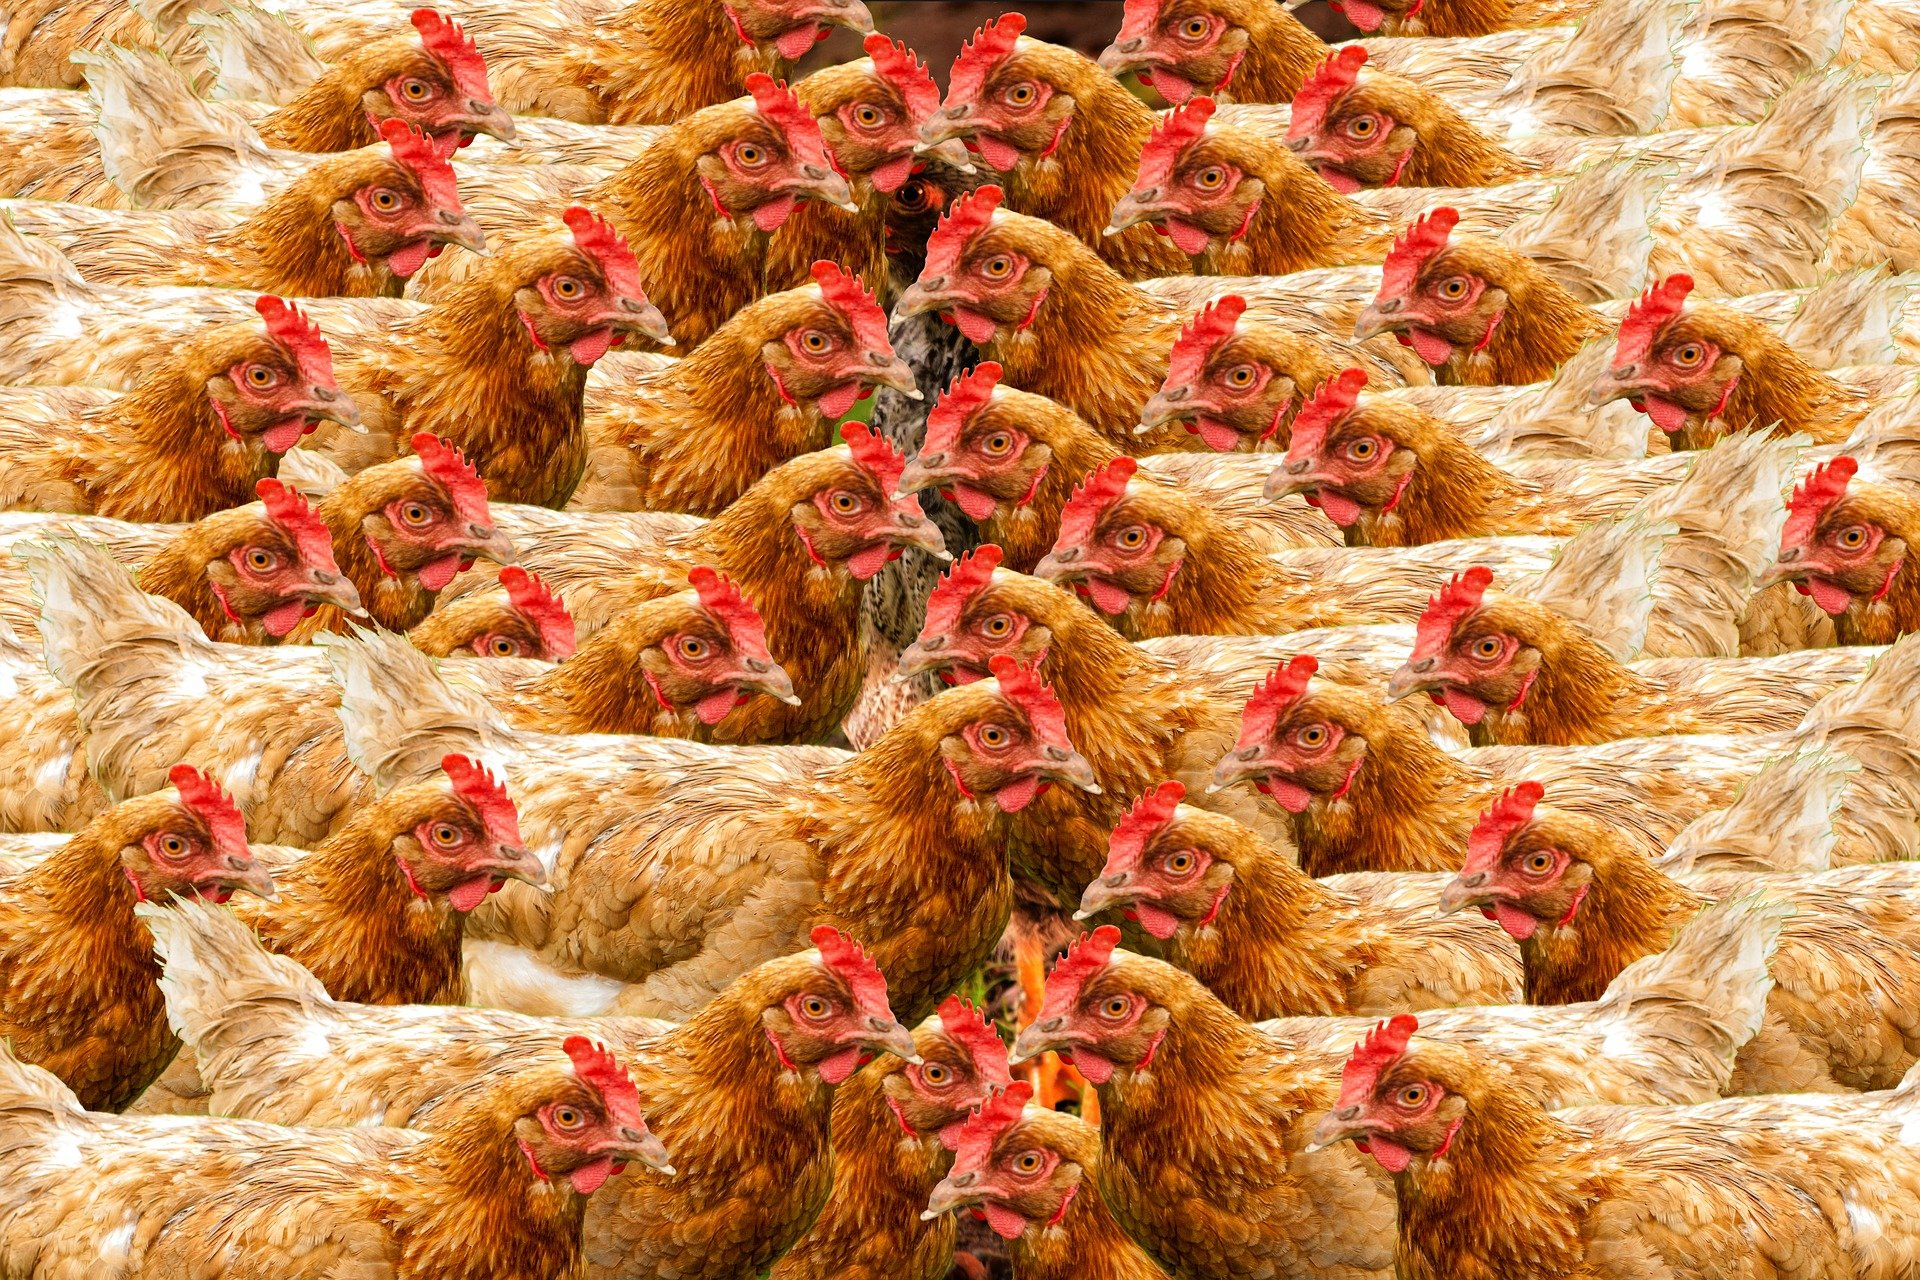 Researchers suggest broiler chicken is the hallmark of the Anthropocene